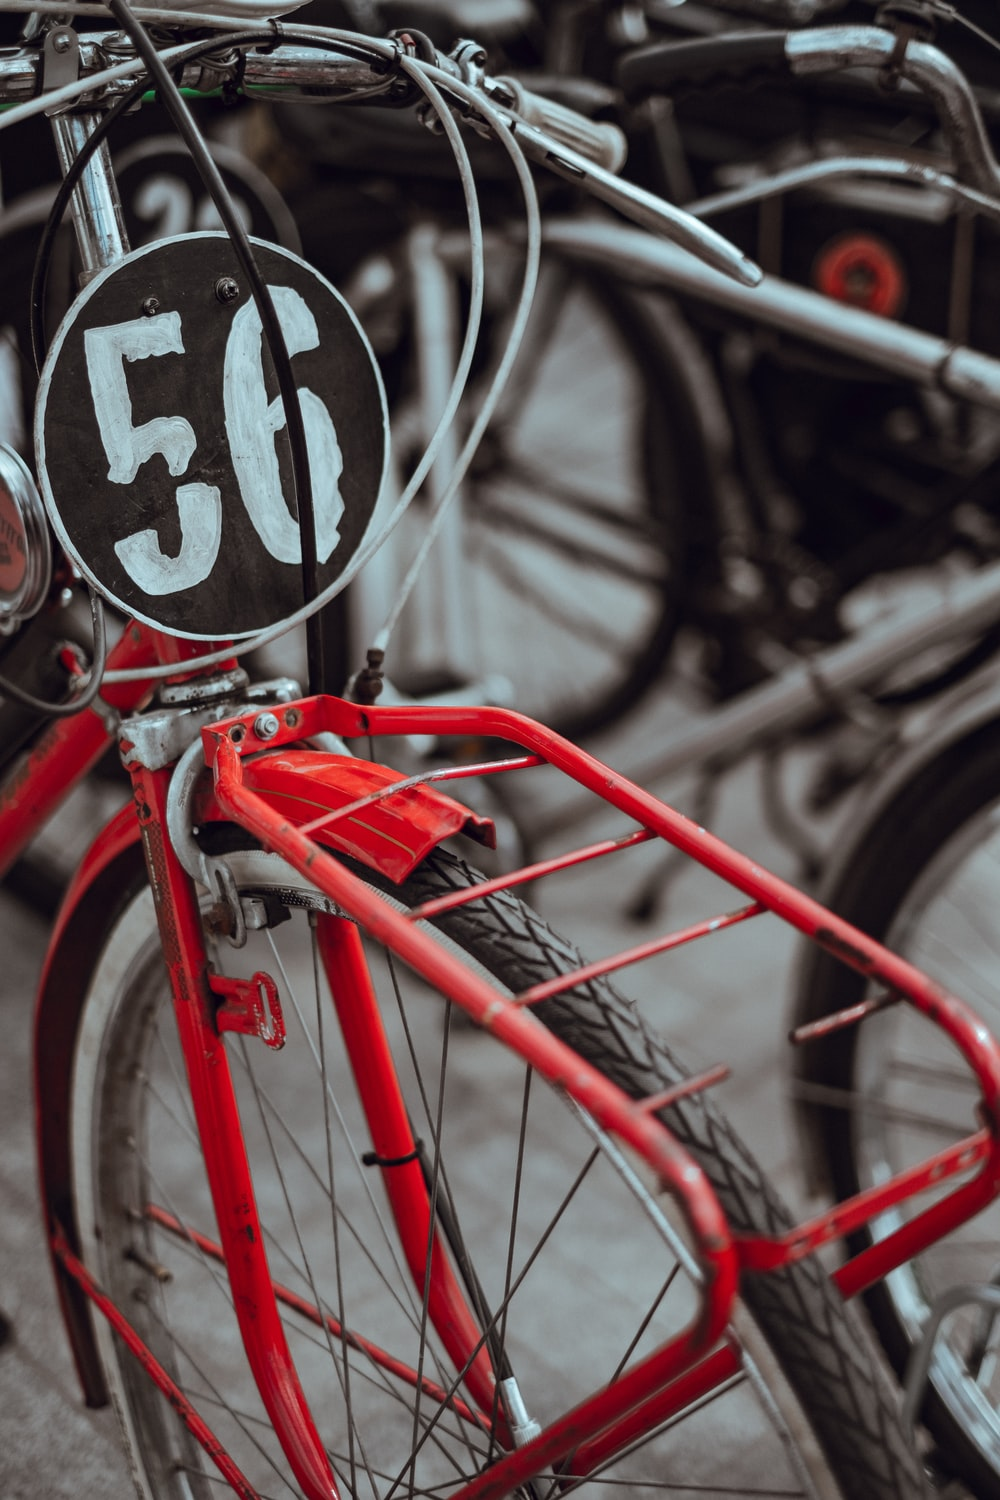 red bicycle with number 56